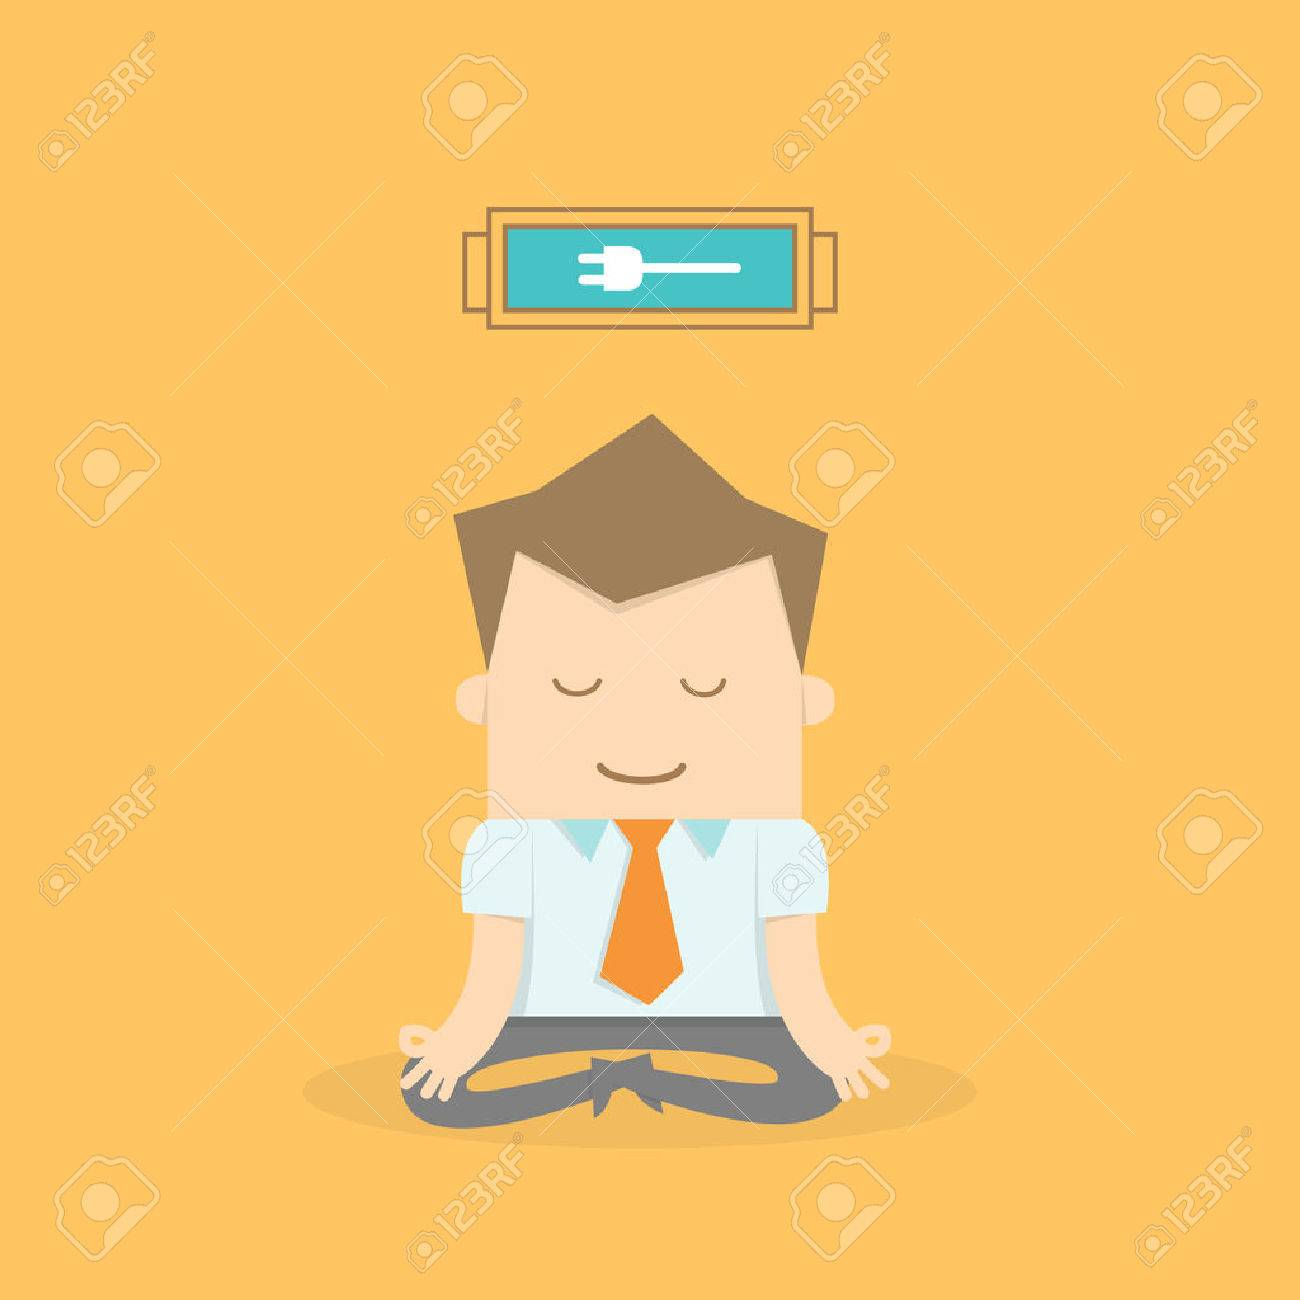 business man meditating to recharge and relax Stock Vector - 23864385